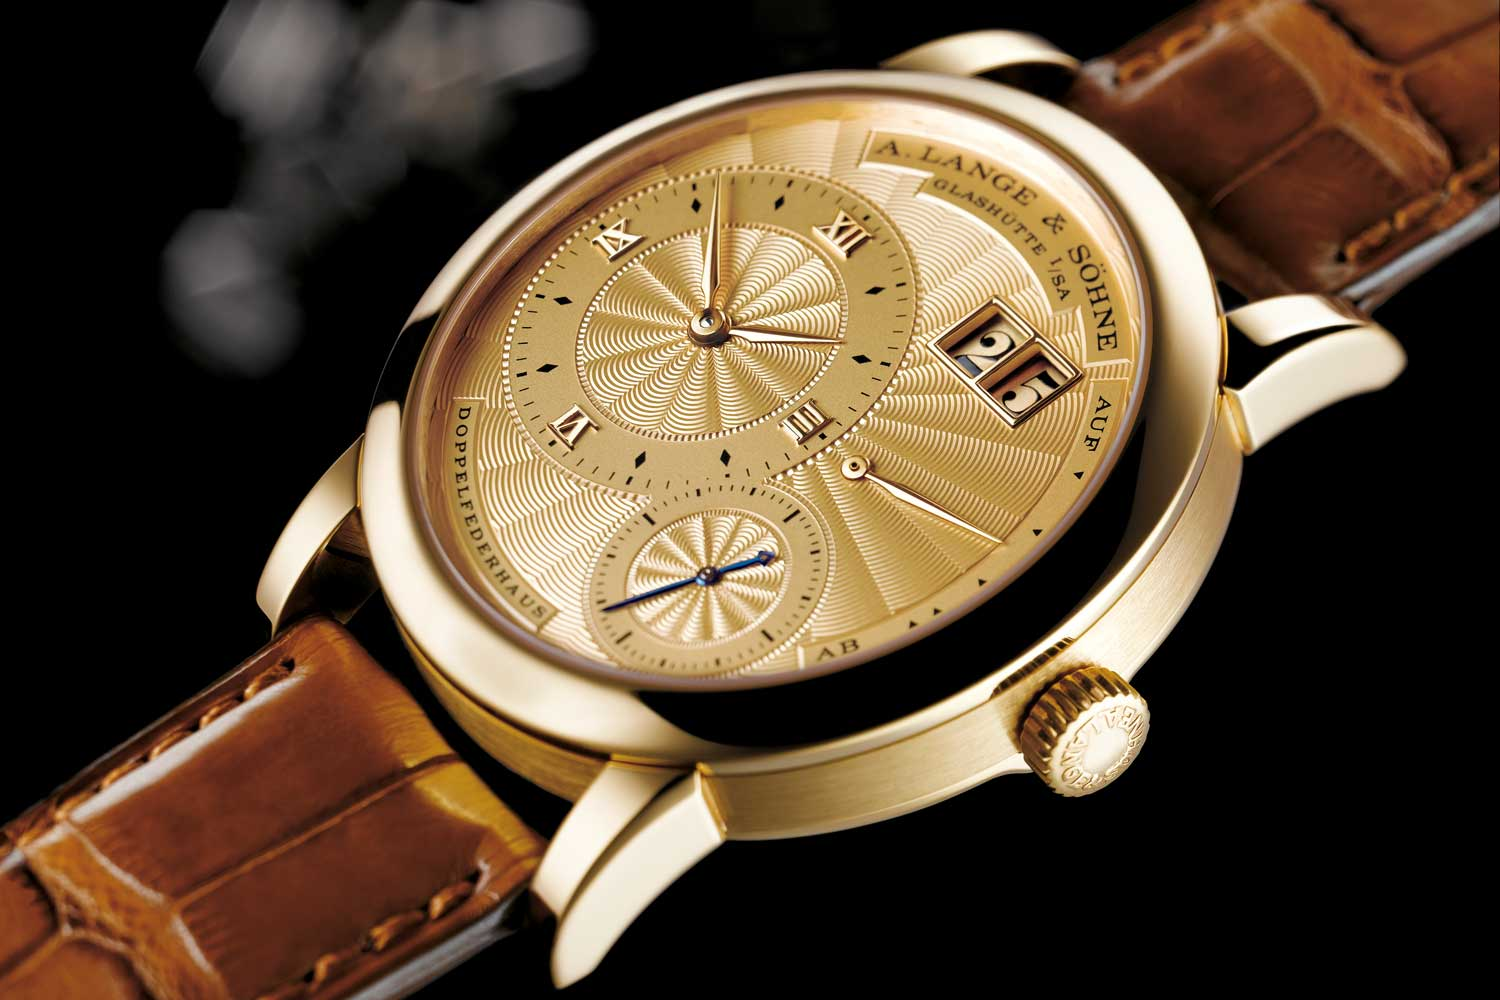 """In the 19th century, the designation """"1A"""" was used by A. Lange & Söhne to identify watches crafted from the very finest materials and finished to the highest degree of perfection. In 1998, Lange presented the LANGE 1A as a reminiscence of this heritage. It has a solid-gold lever and escape wheel, a solid-gold pallet cock, escape-wheel cock, and balance cock, as well as a solid-gold guilloched dial. Additionally, this masterpiece features all of the refinements that make the LANGE 1 such a precious watch. In 1998 and 1999, the LANGE 1A was crafted in a limited edition of 100 pieces in yellow gold."""